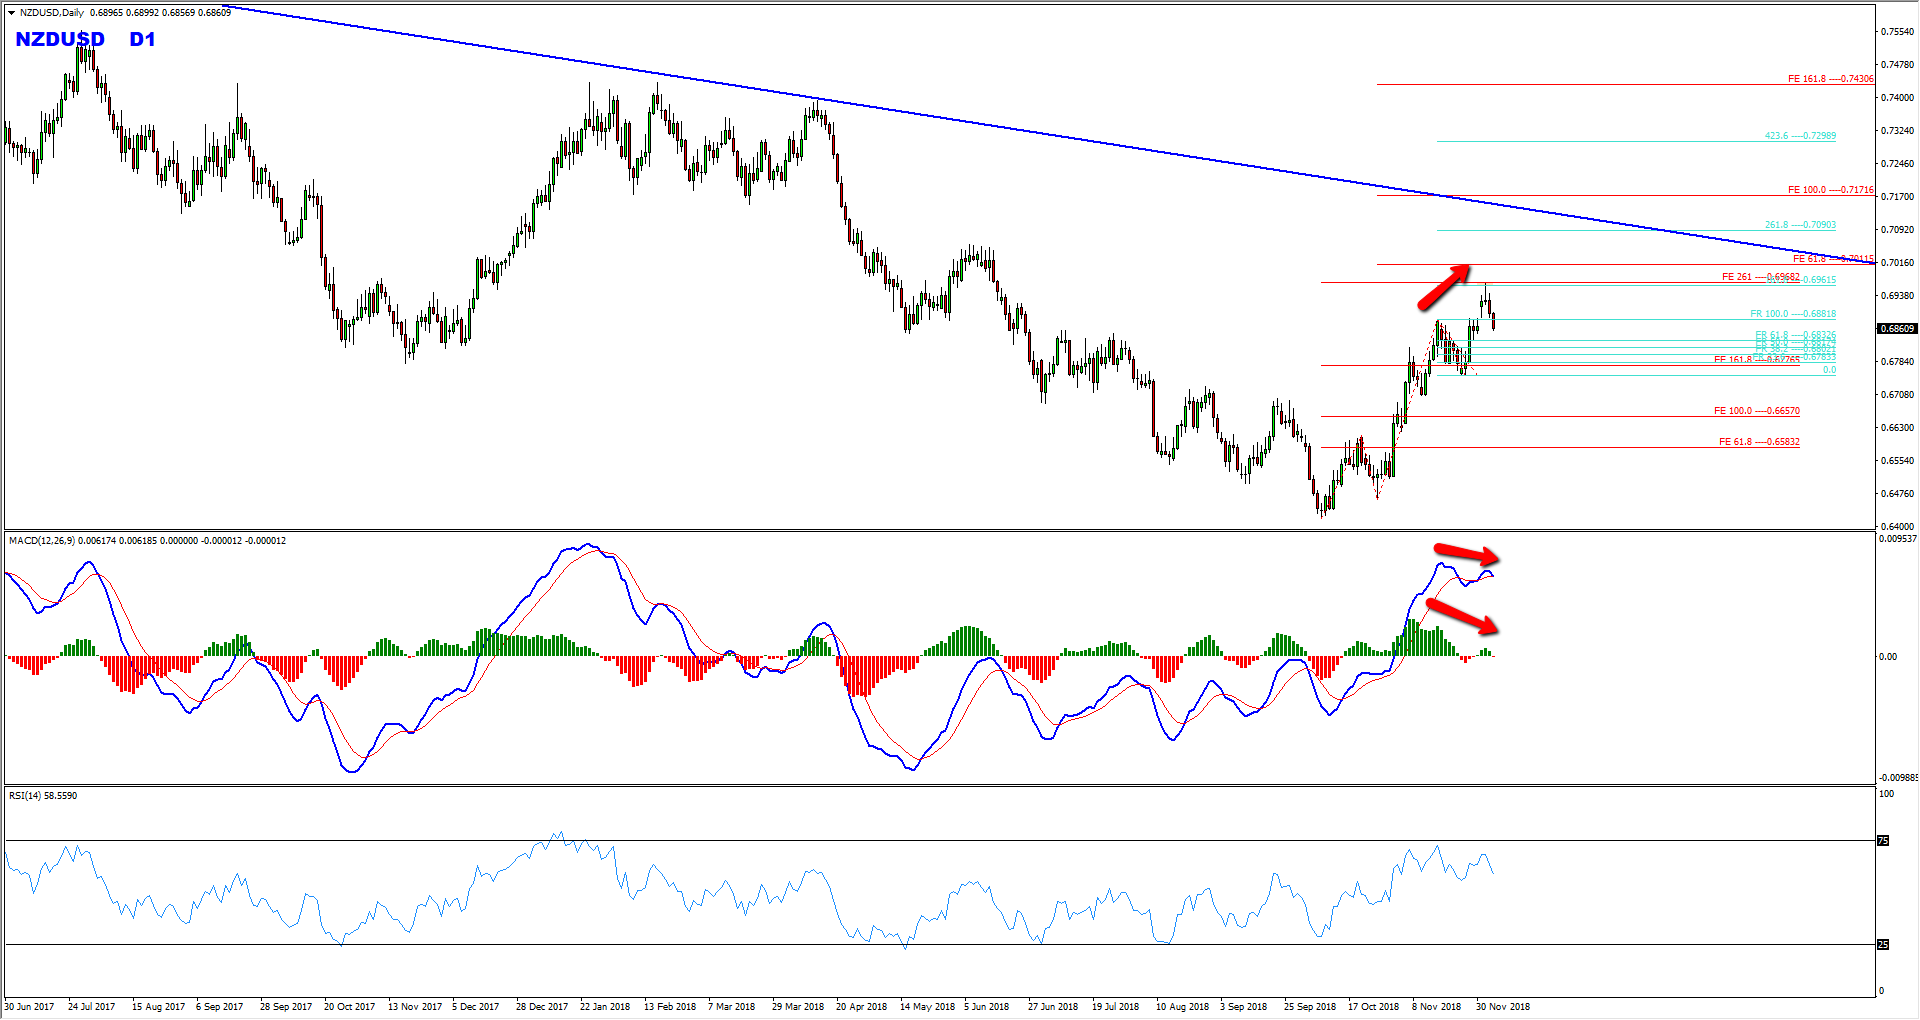 NZDUSD Sell Opportunity After Pullbacks